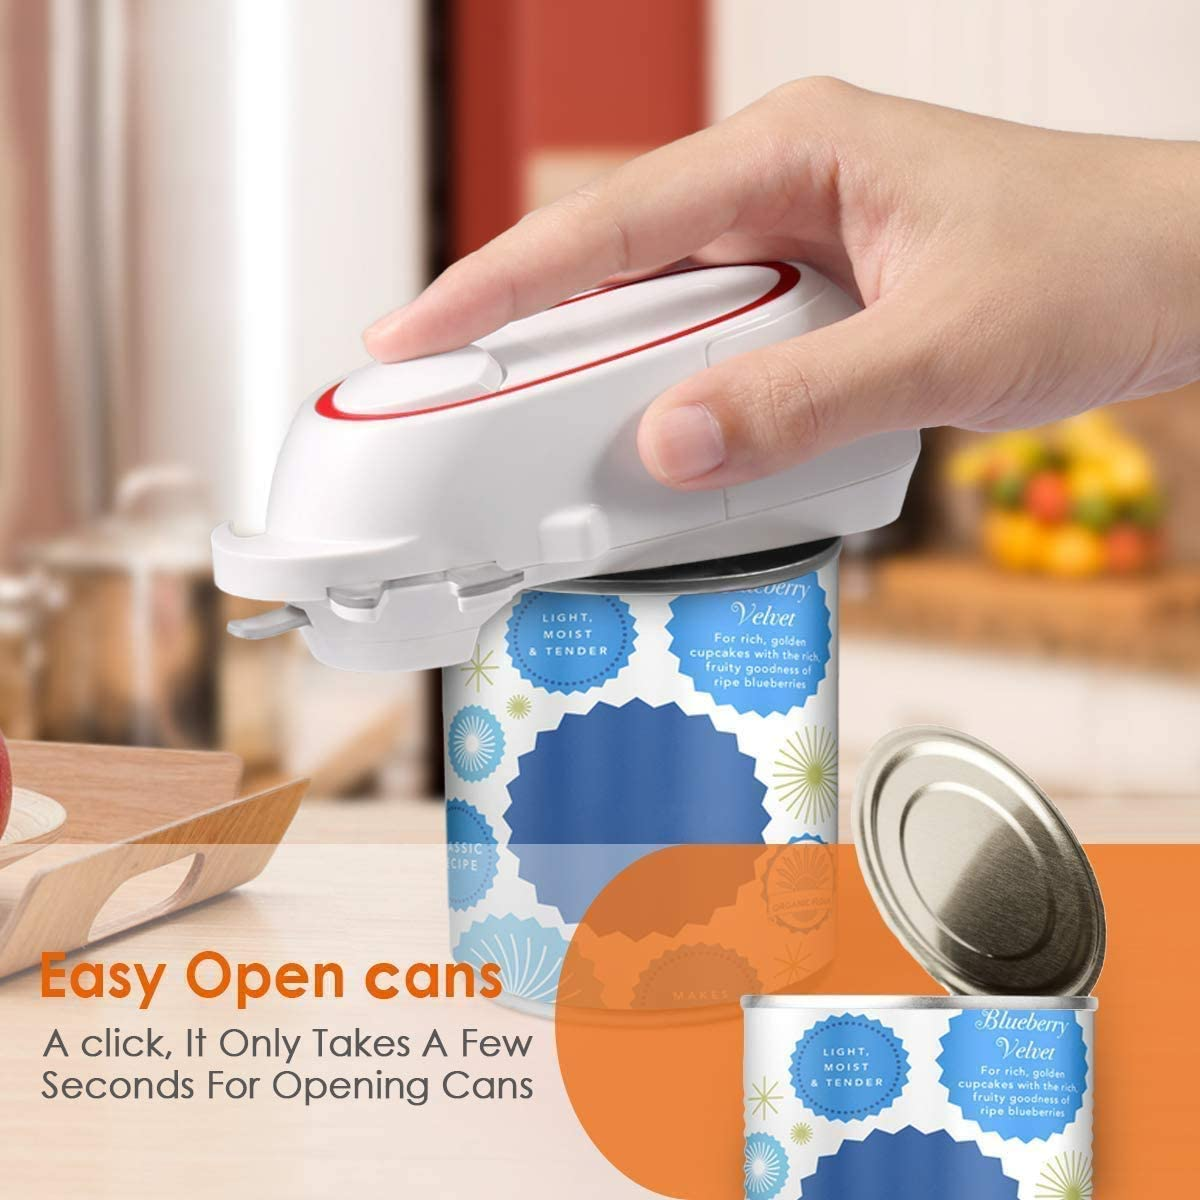 Kitchen Can Opener Electric Safe /& Easy Automatic Can//Tin Opener 2020 New 5 in 1 Multi-function Can Opener Electric Can Opener Chef/'s Best Choice -Powerful